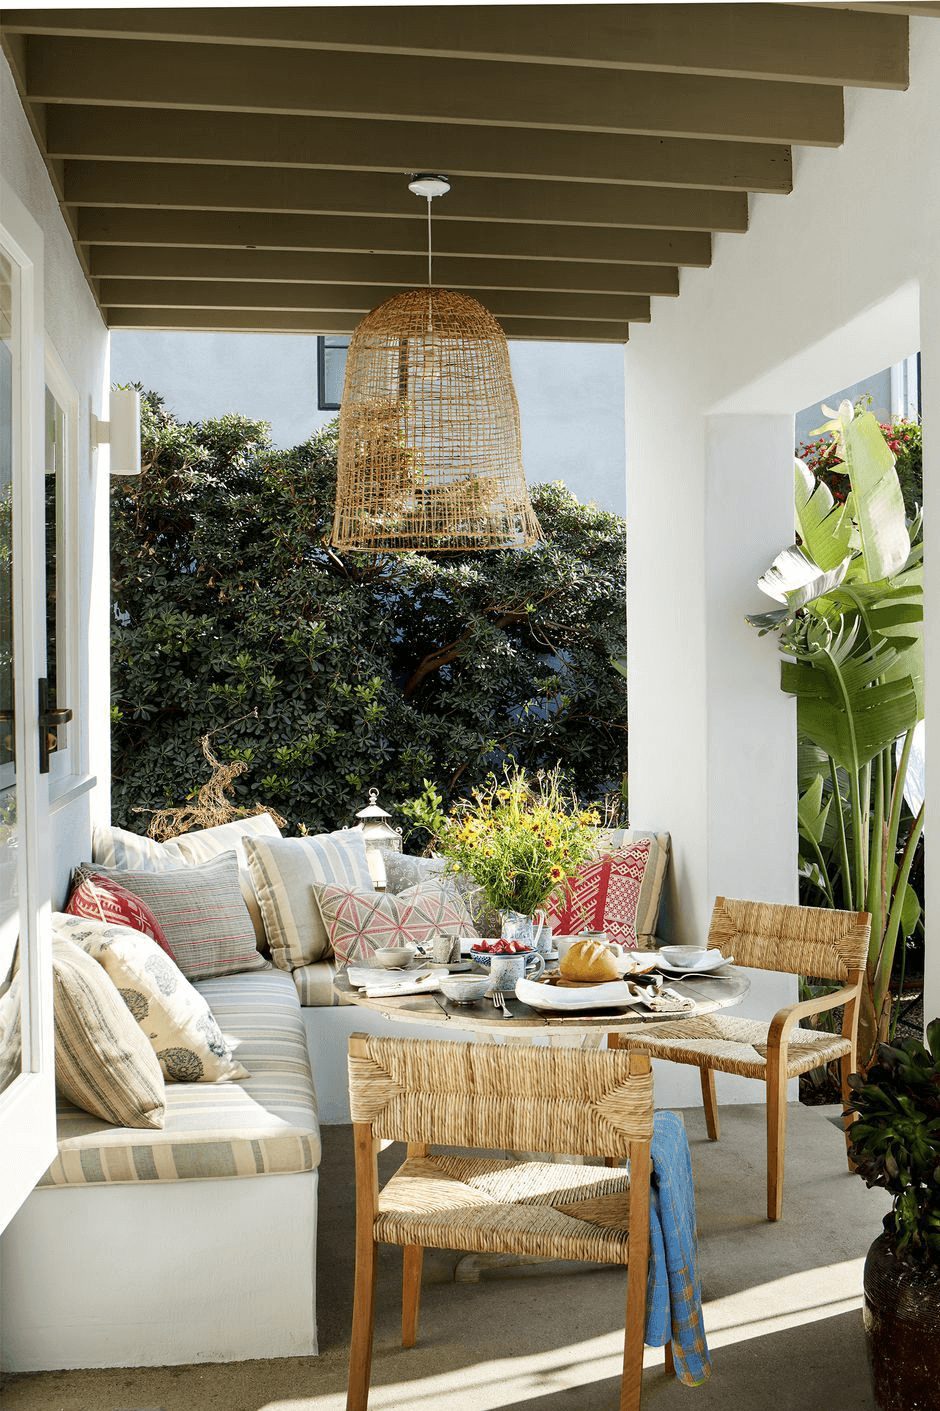 BOHEMIAN BACKYARD PORCH DESIGN IDEAS